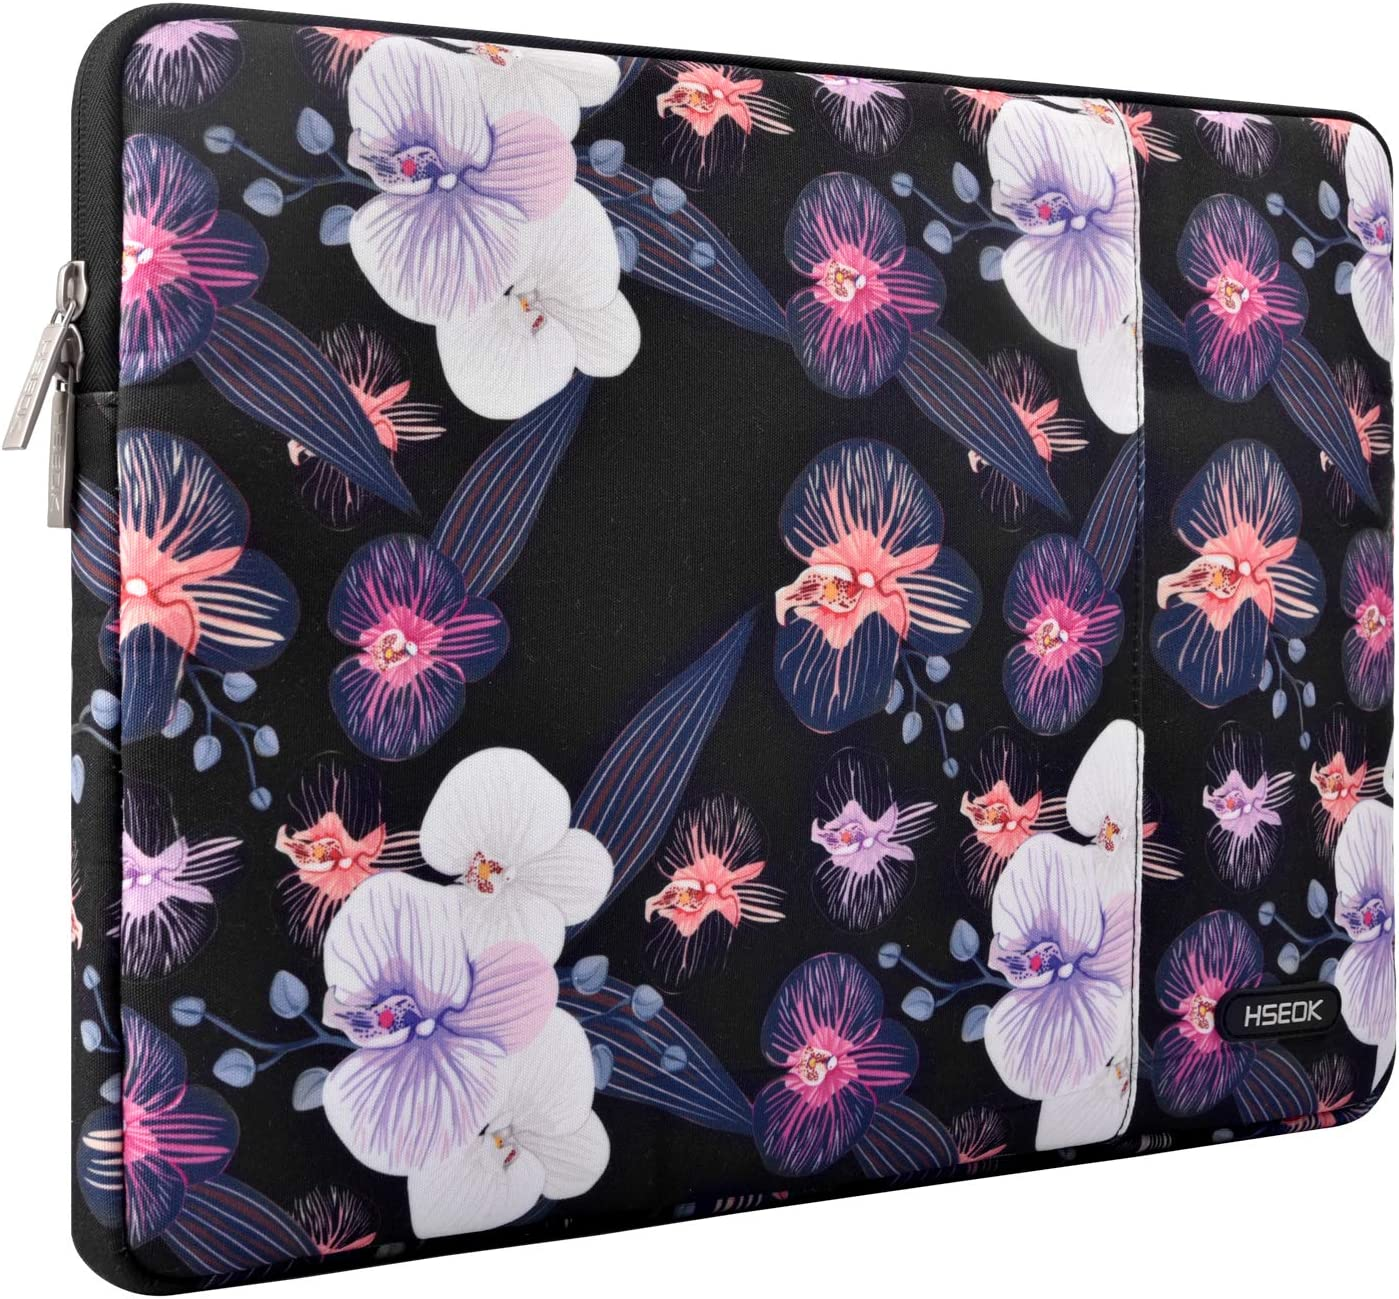 Hseok 15.6-Inch Laptop Case Sleeve, Spill-Resistant Case for 15.4-Inch MacBook Pro 2012 A1286, MacBook Pro Retina 2012-2015 A1398 and Most 15.6-Inch Laptop,Jellyfish Flower